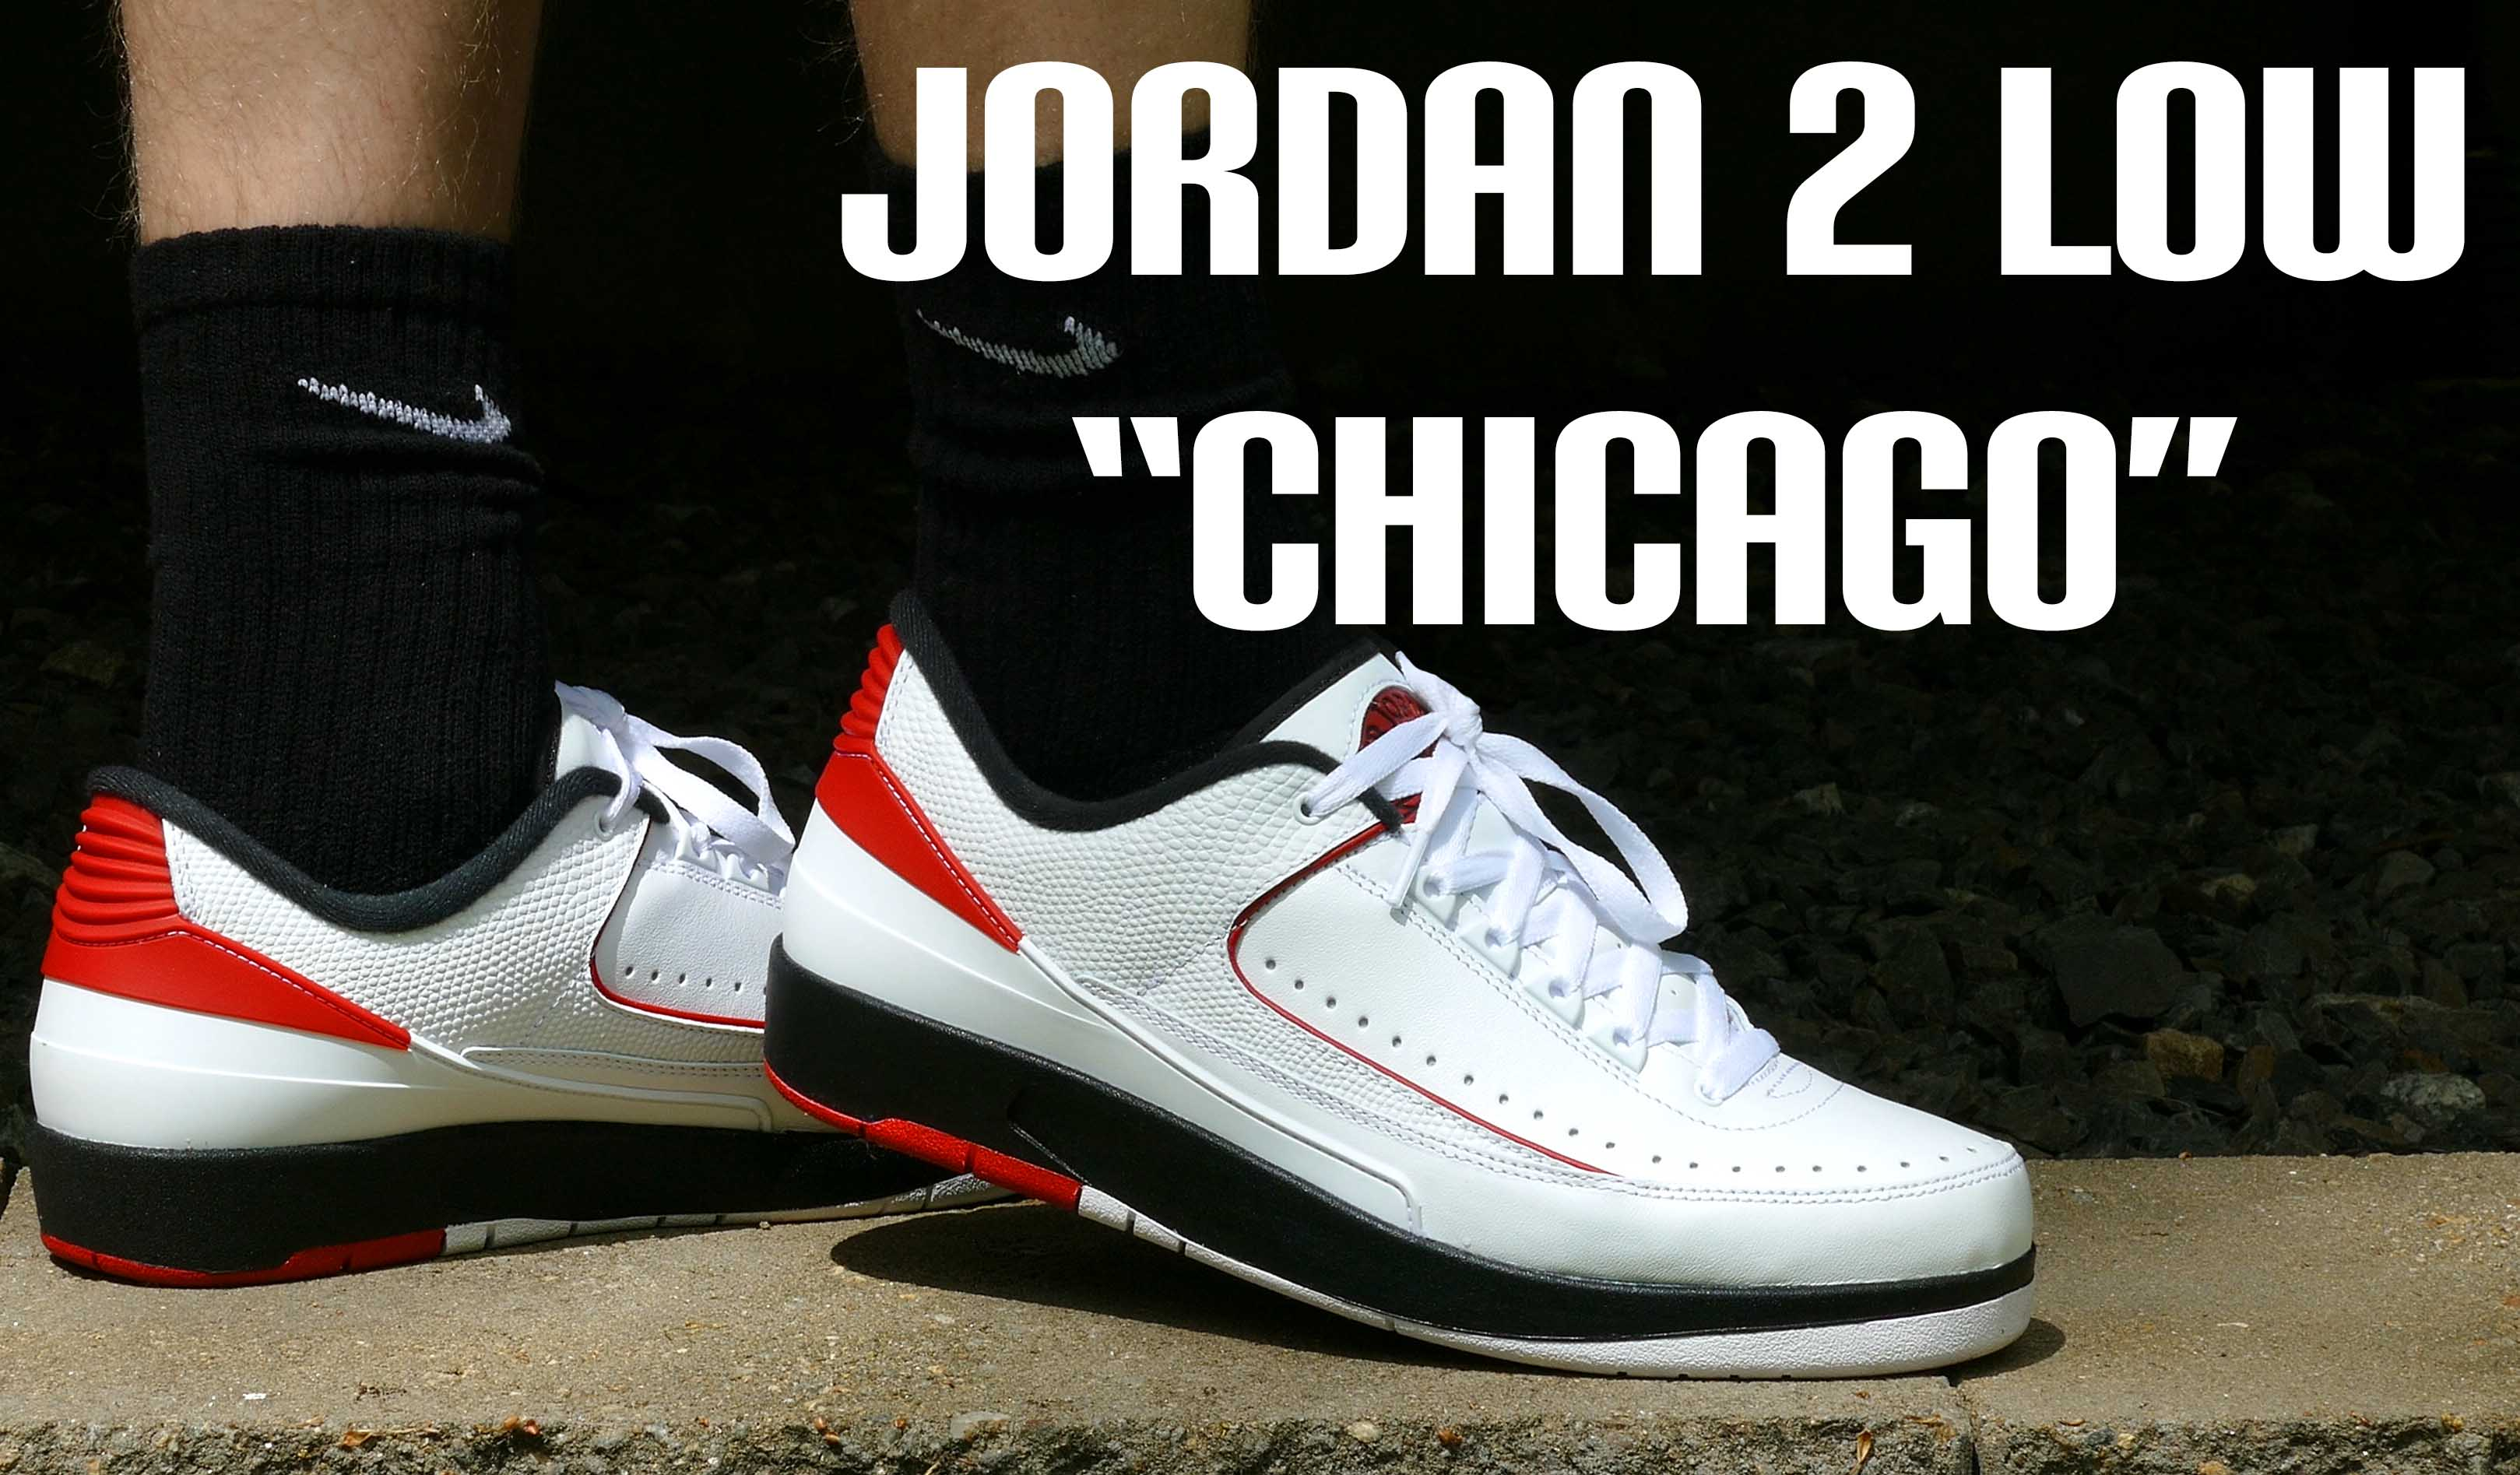 Air Jordan 2 Low Chicago THUMBNAIL